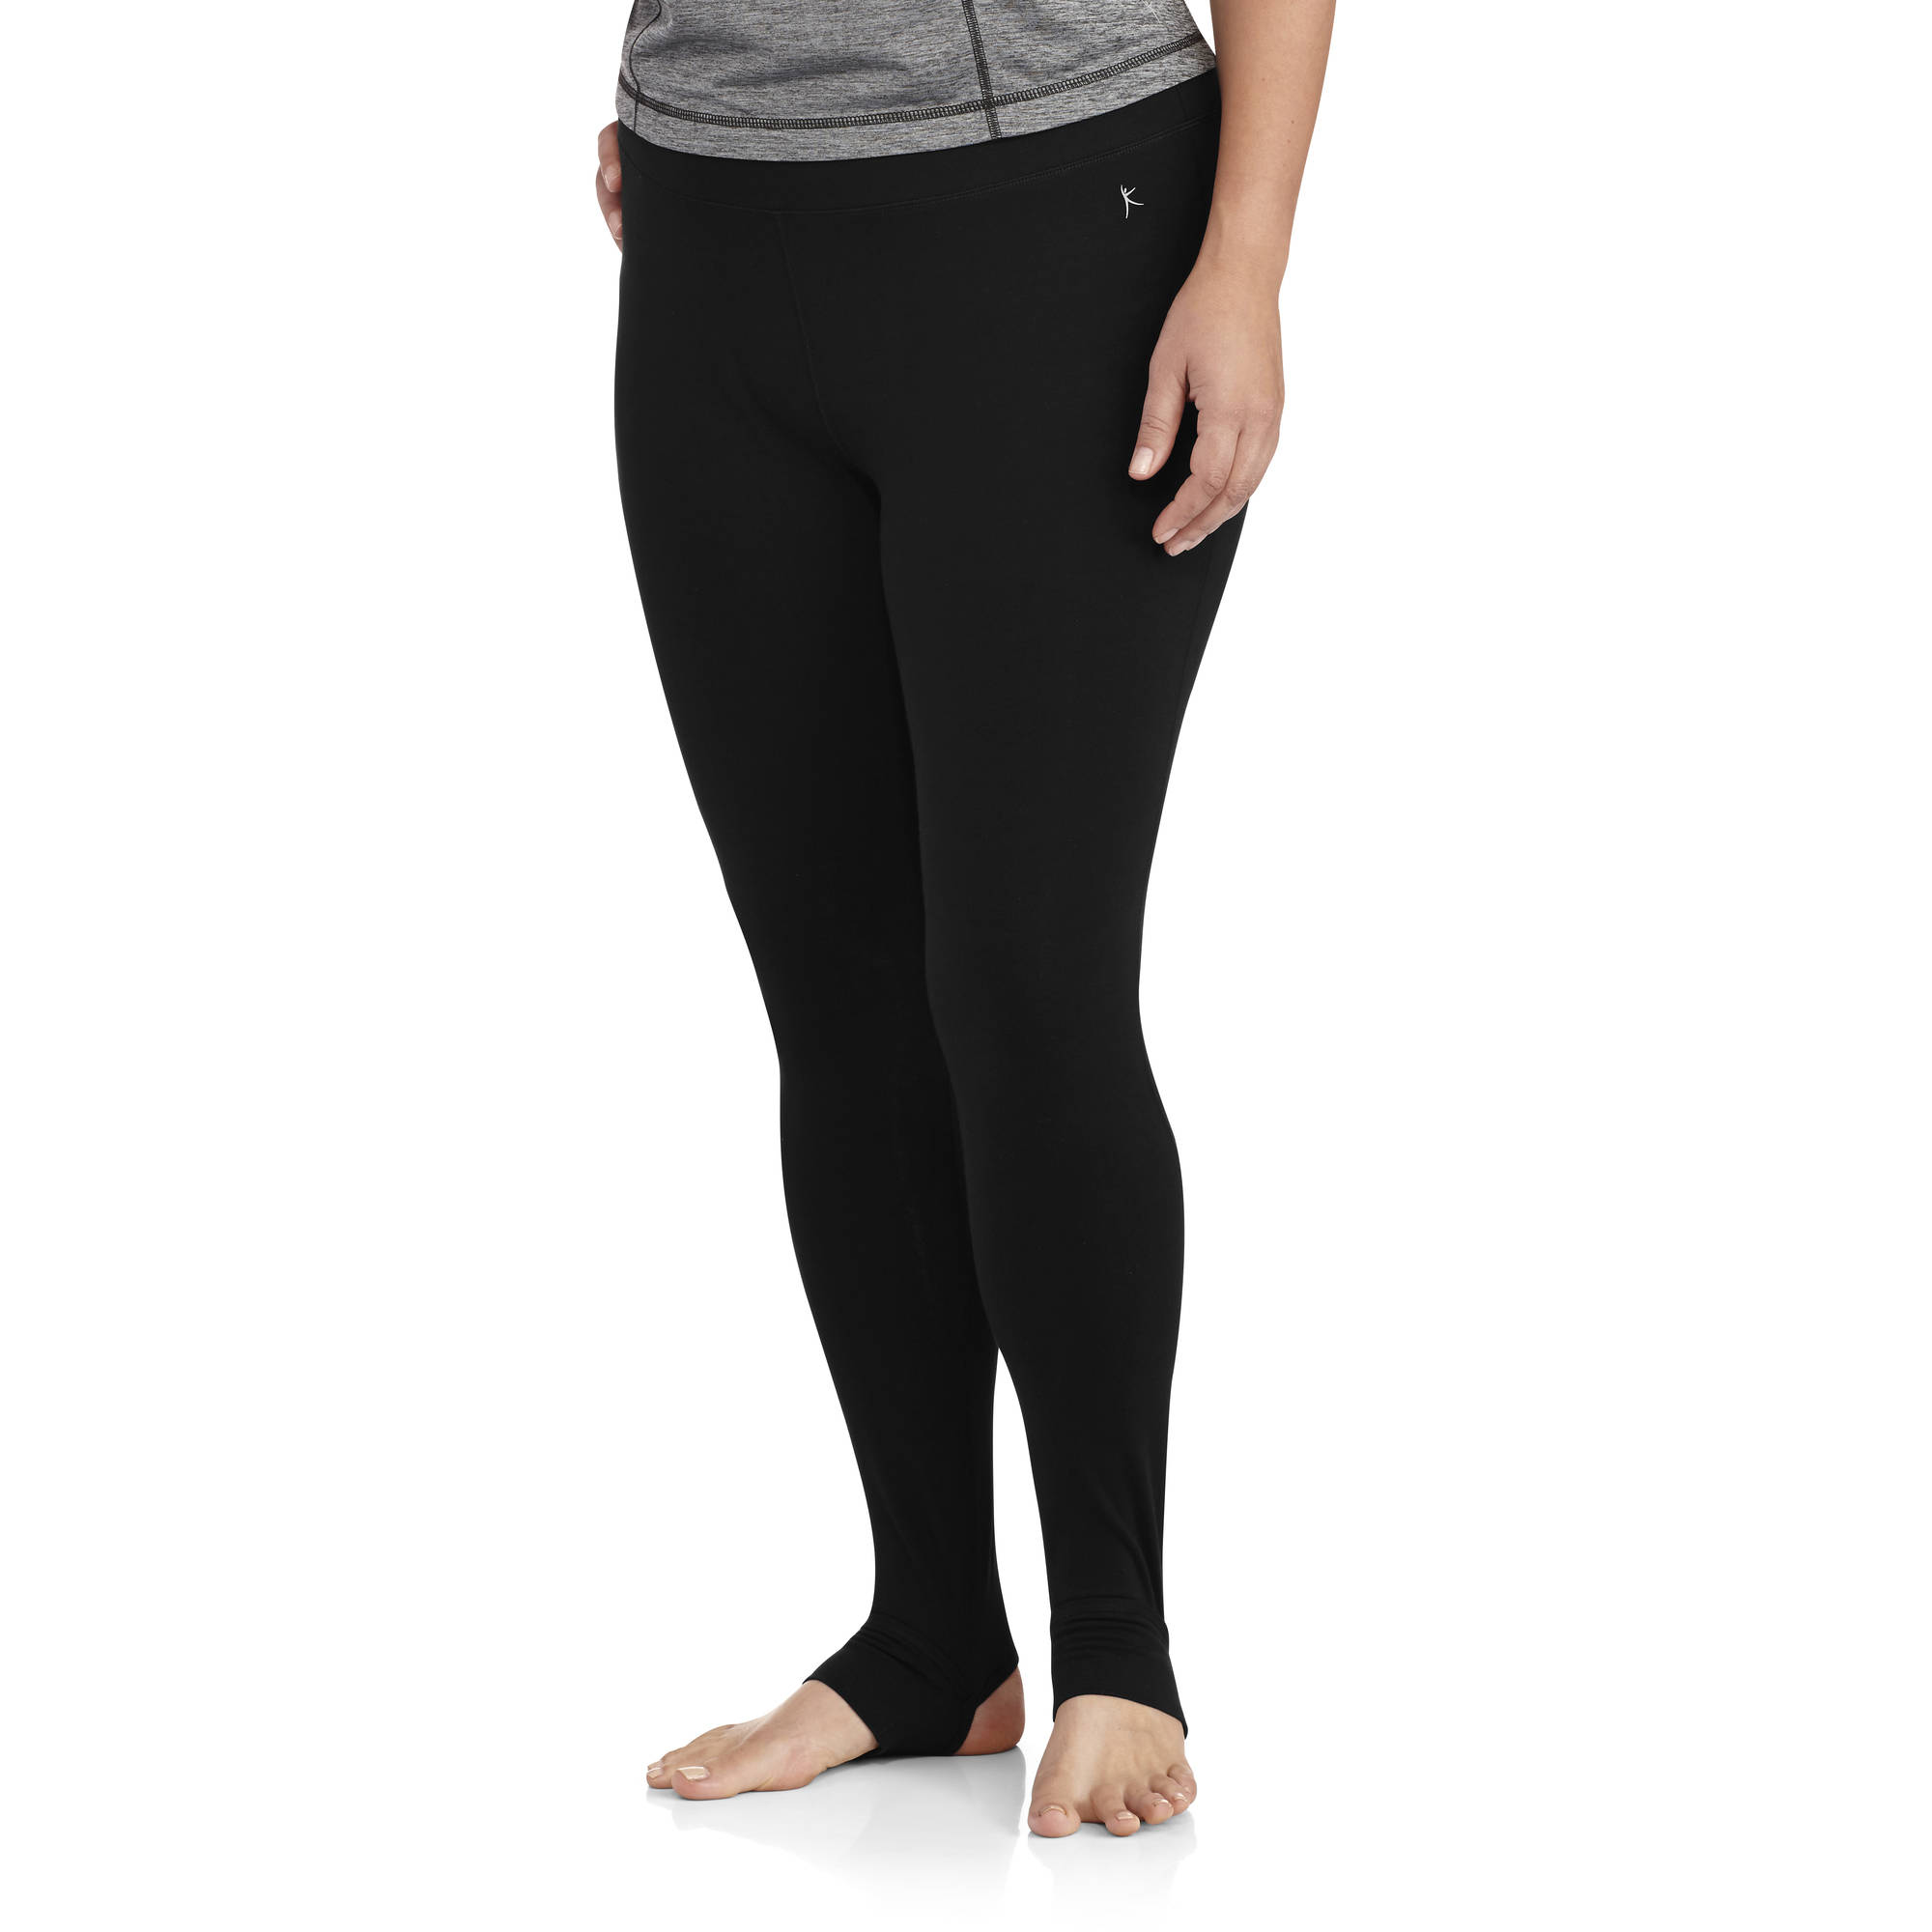 Womens Black Stirrup Leggings